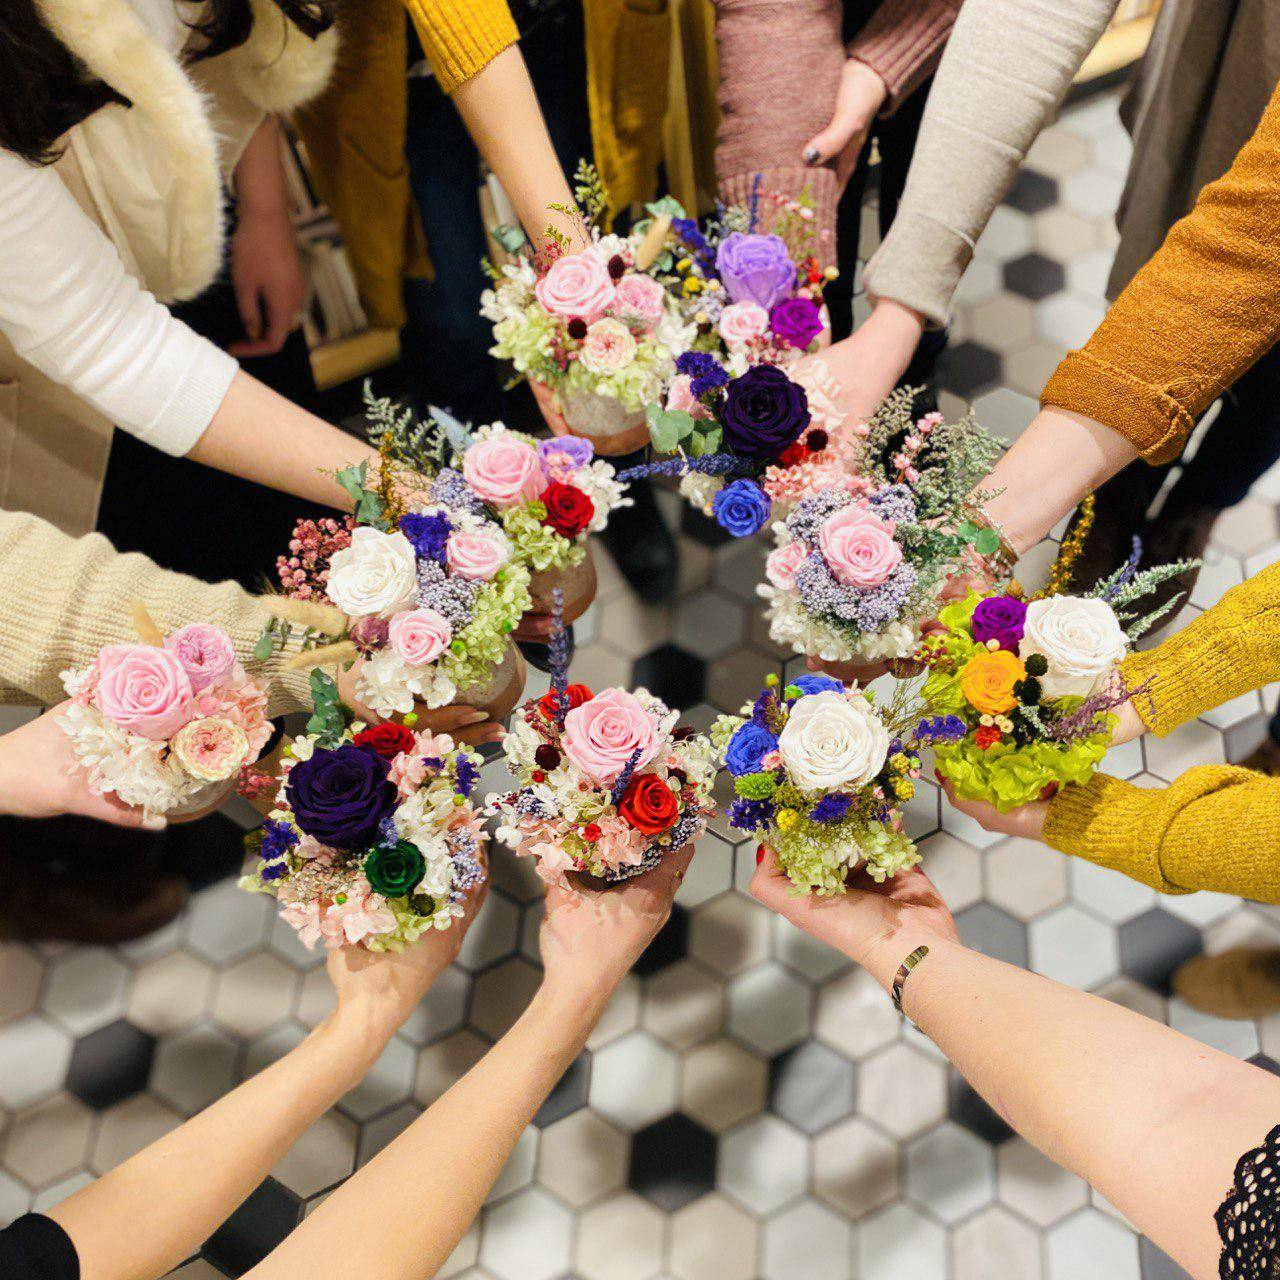 2021.4.7 Google Culture Club Flower Workshop